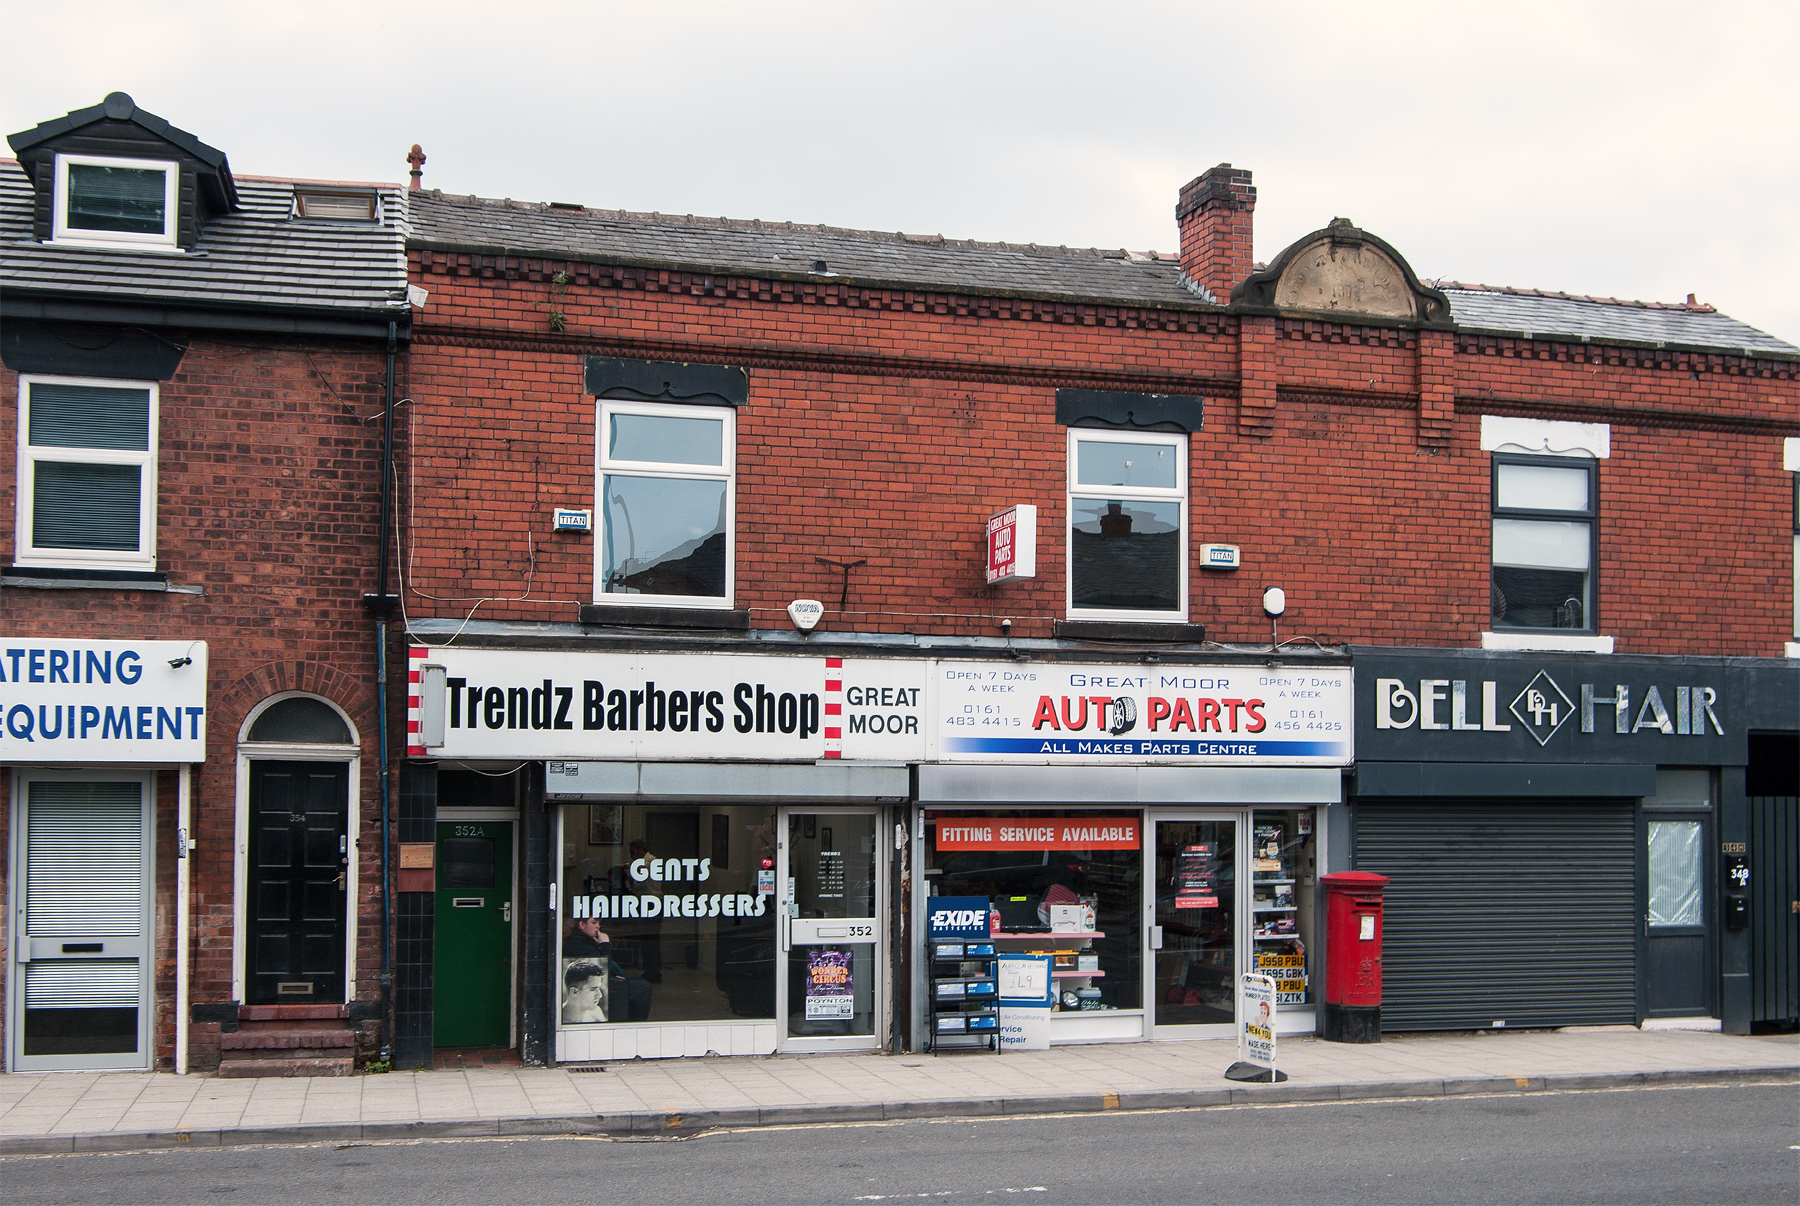 buxton road 352A first floor offices great moor stockport.jpg